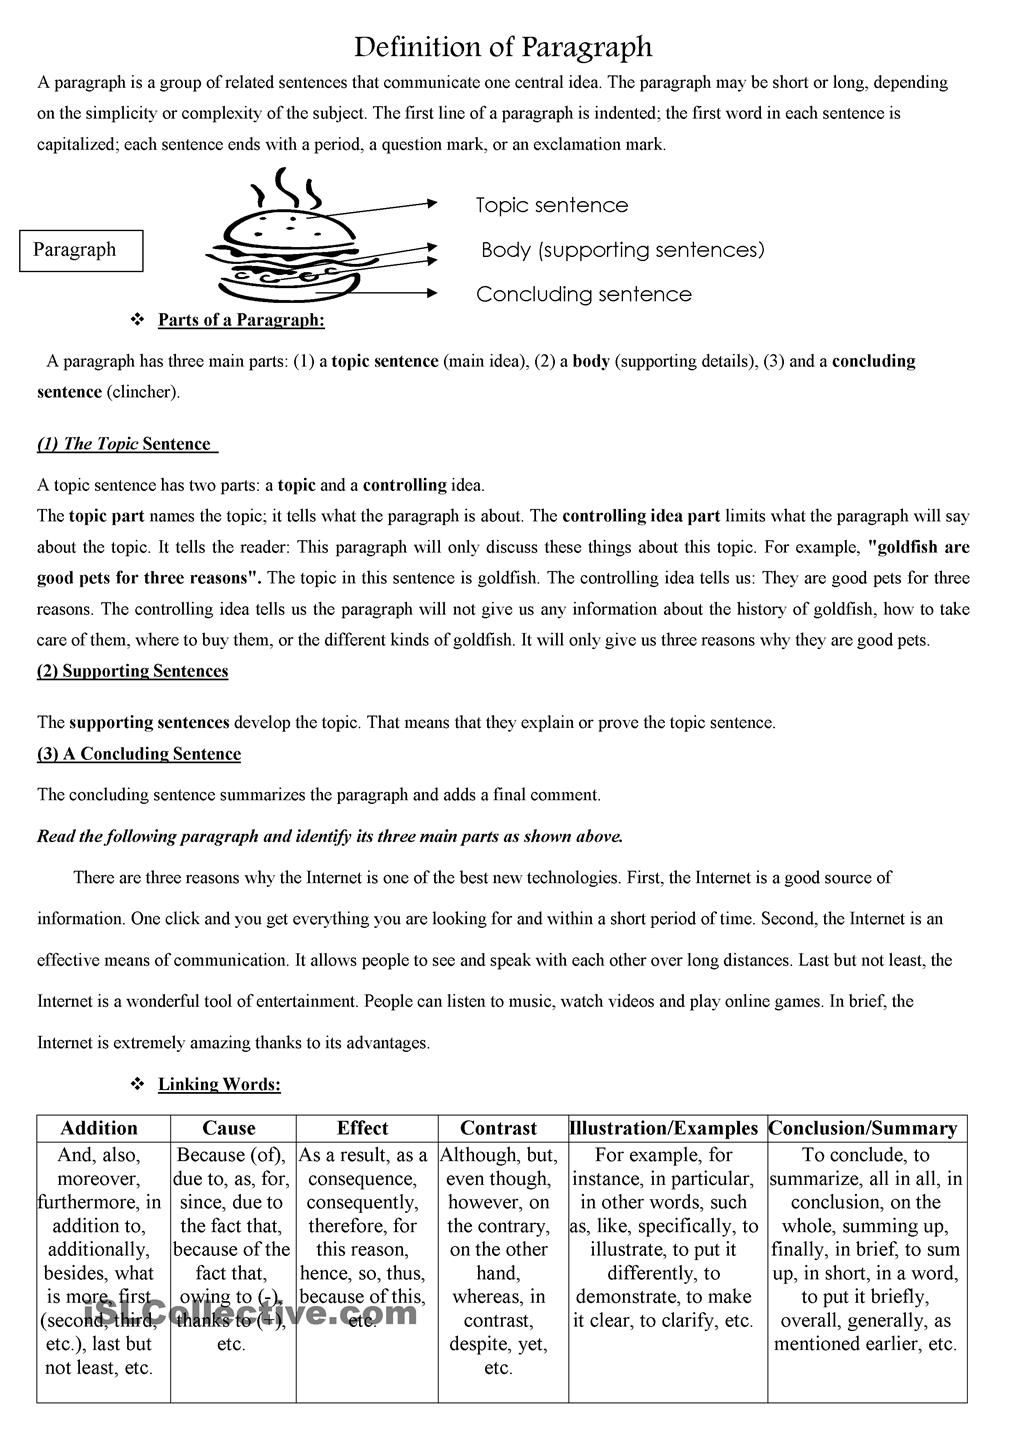 how to write a paragraph worksheets Paragraph structure practice worksheet  paragraph #1 my dog romeo is so much fun to play with one reason he's fun is because he loves to play catch.